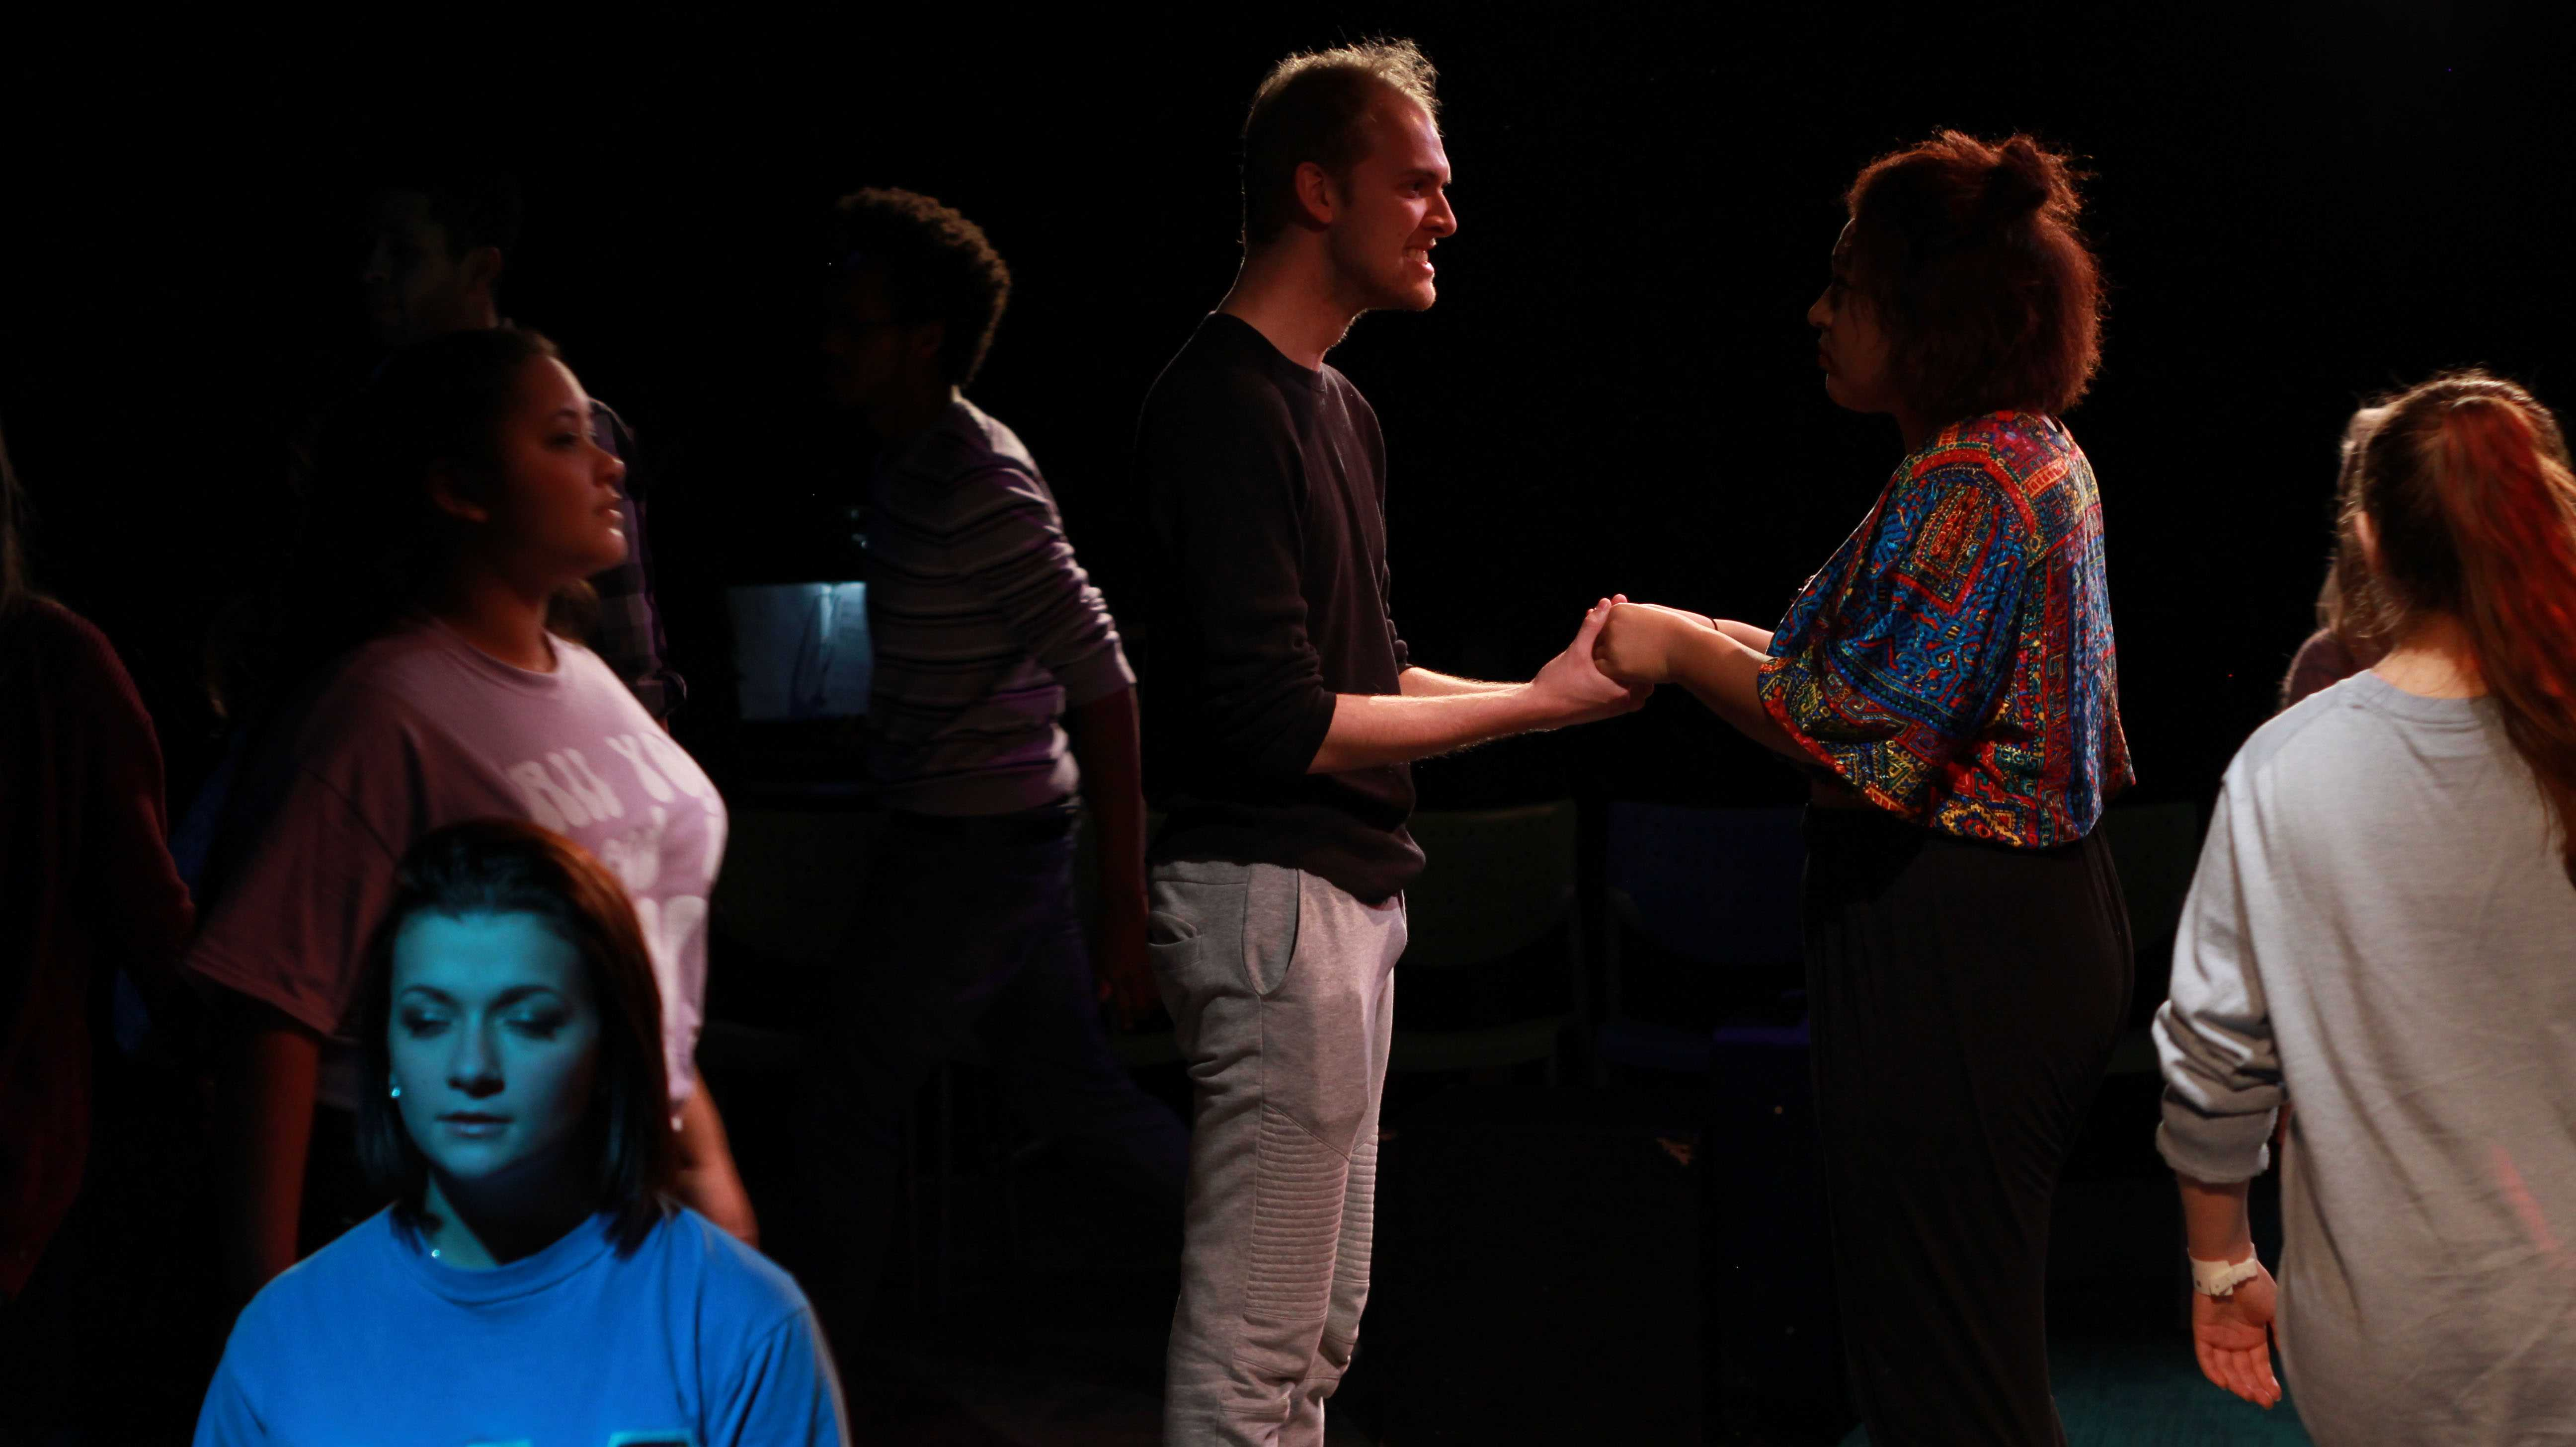 Nate+Doninger+playing+the+role+of+Xander%27s+father+in+the+musical%2C+Years.+Gabby+Francis+and+Anna+Rose+DLG+also+will+take+part+in+the+musical.